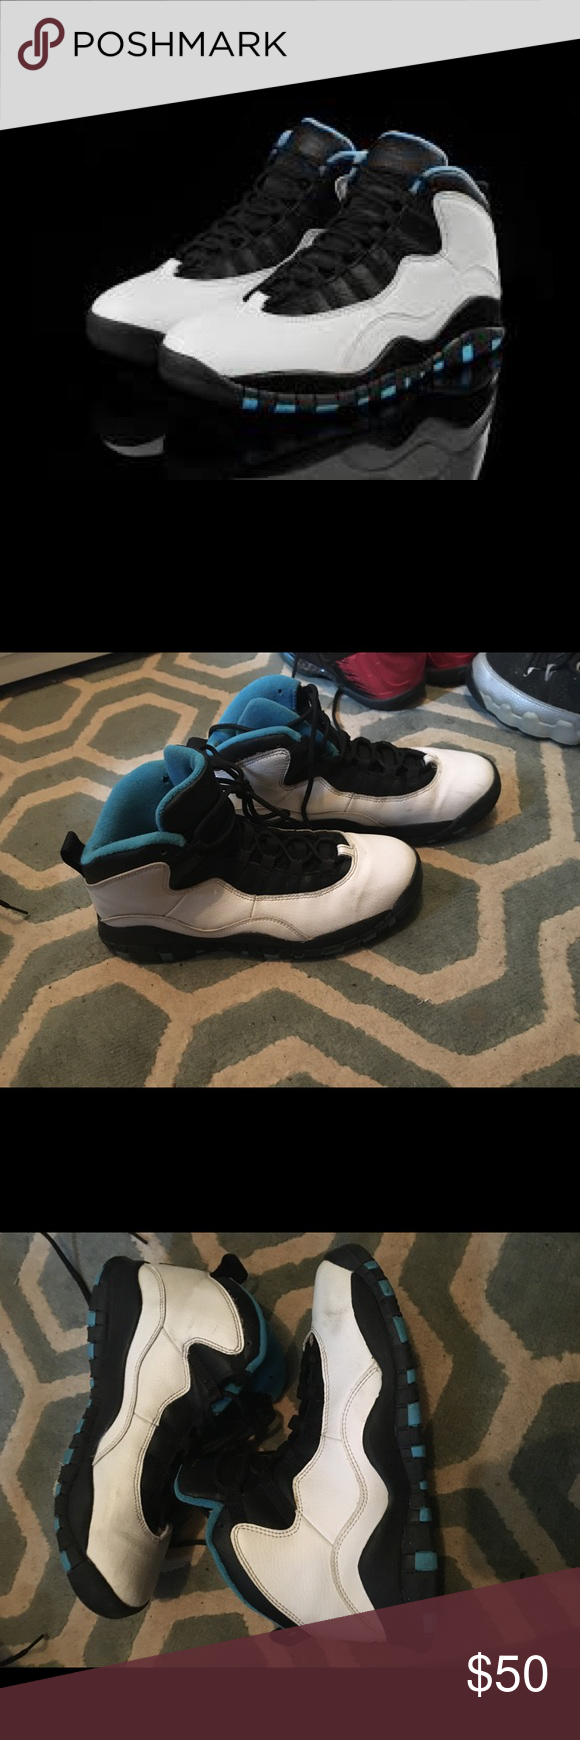 5ccaf96456fab0 Air Jordan 10 white powder blue Air Jordan 10s size 6 men s size 8 women s.  Available in kid size 11c for a mommy and me look Jordan Shoes Sneakers